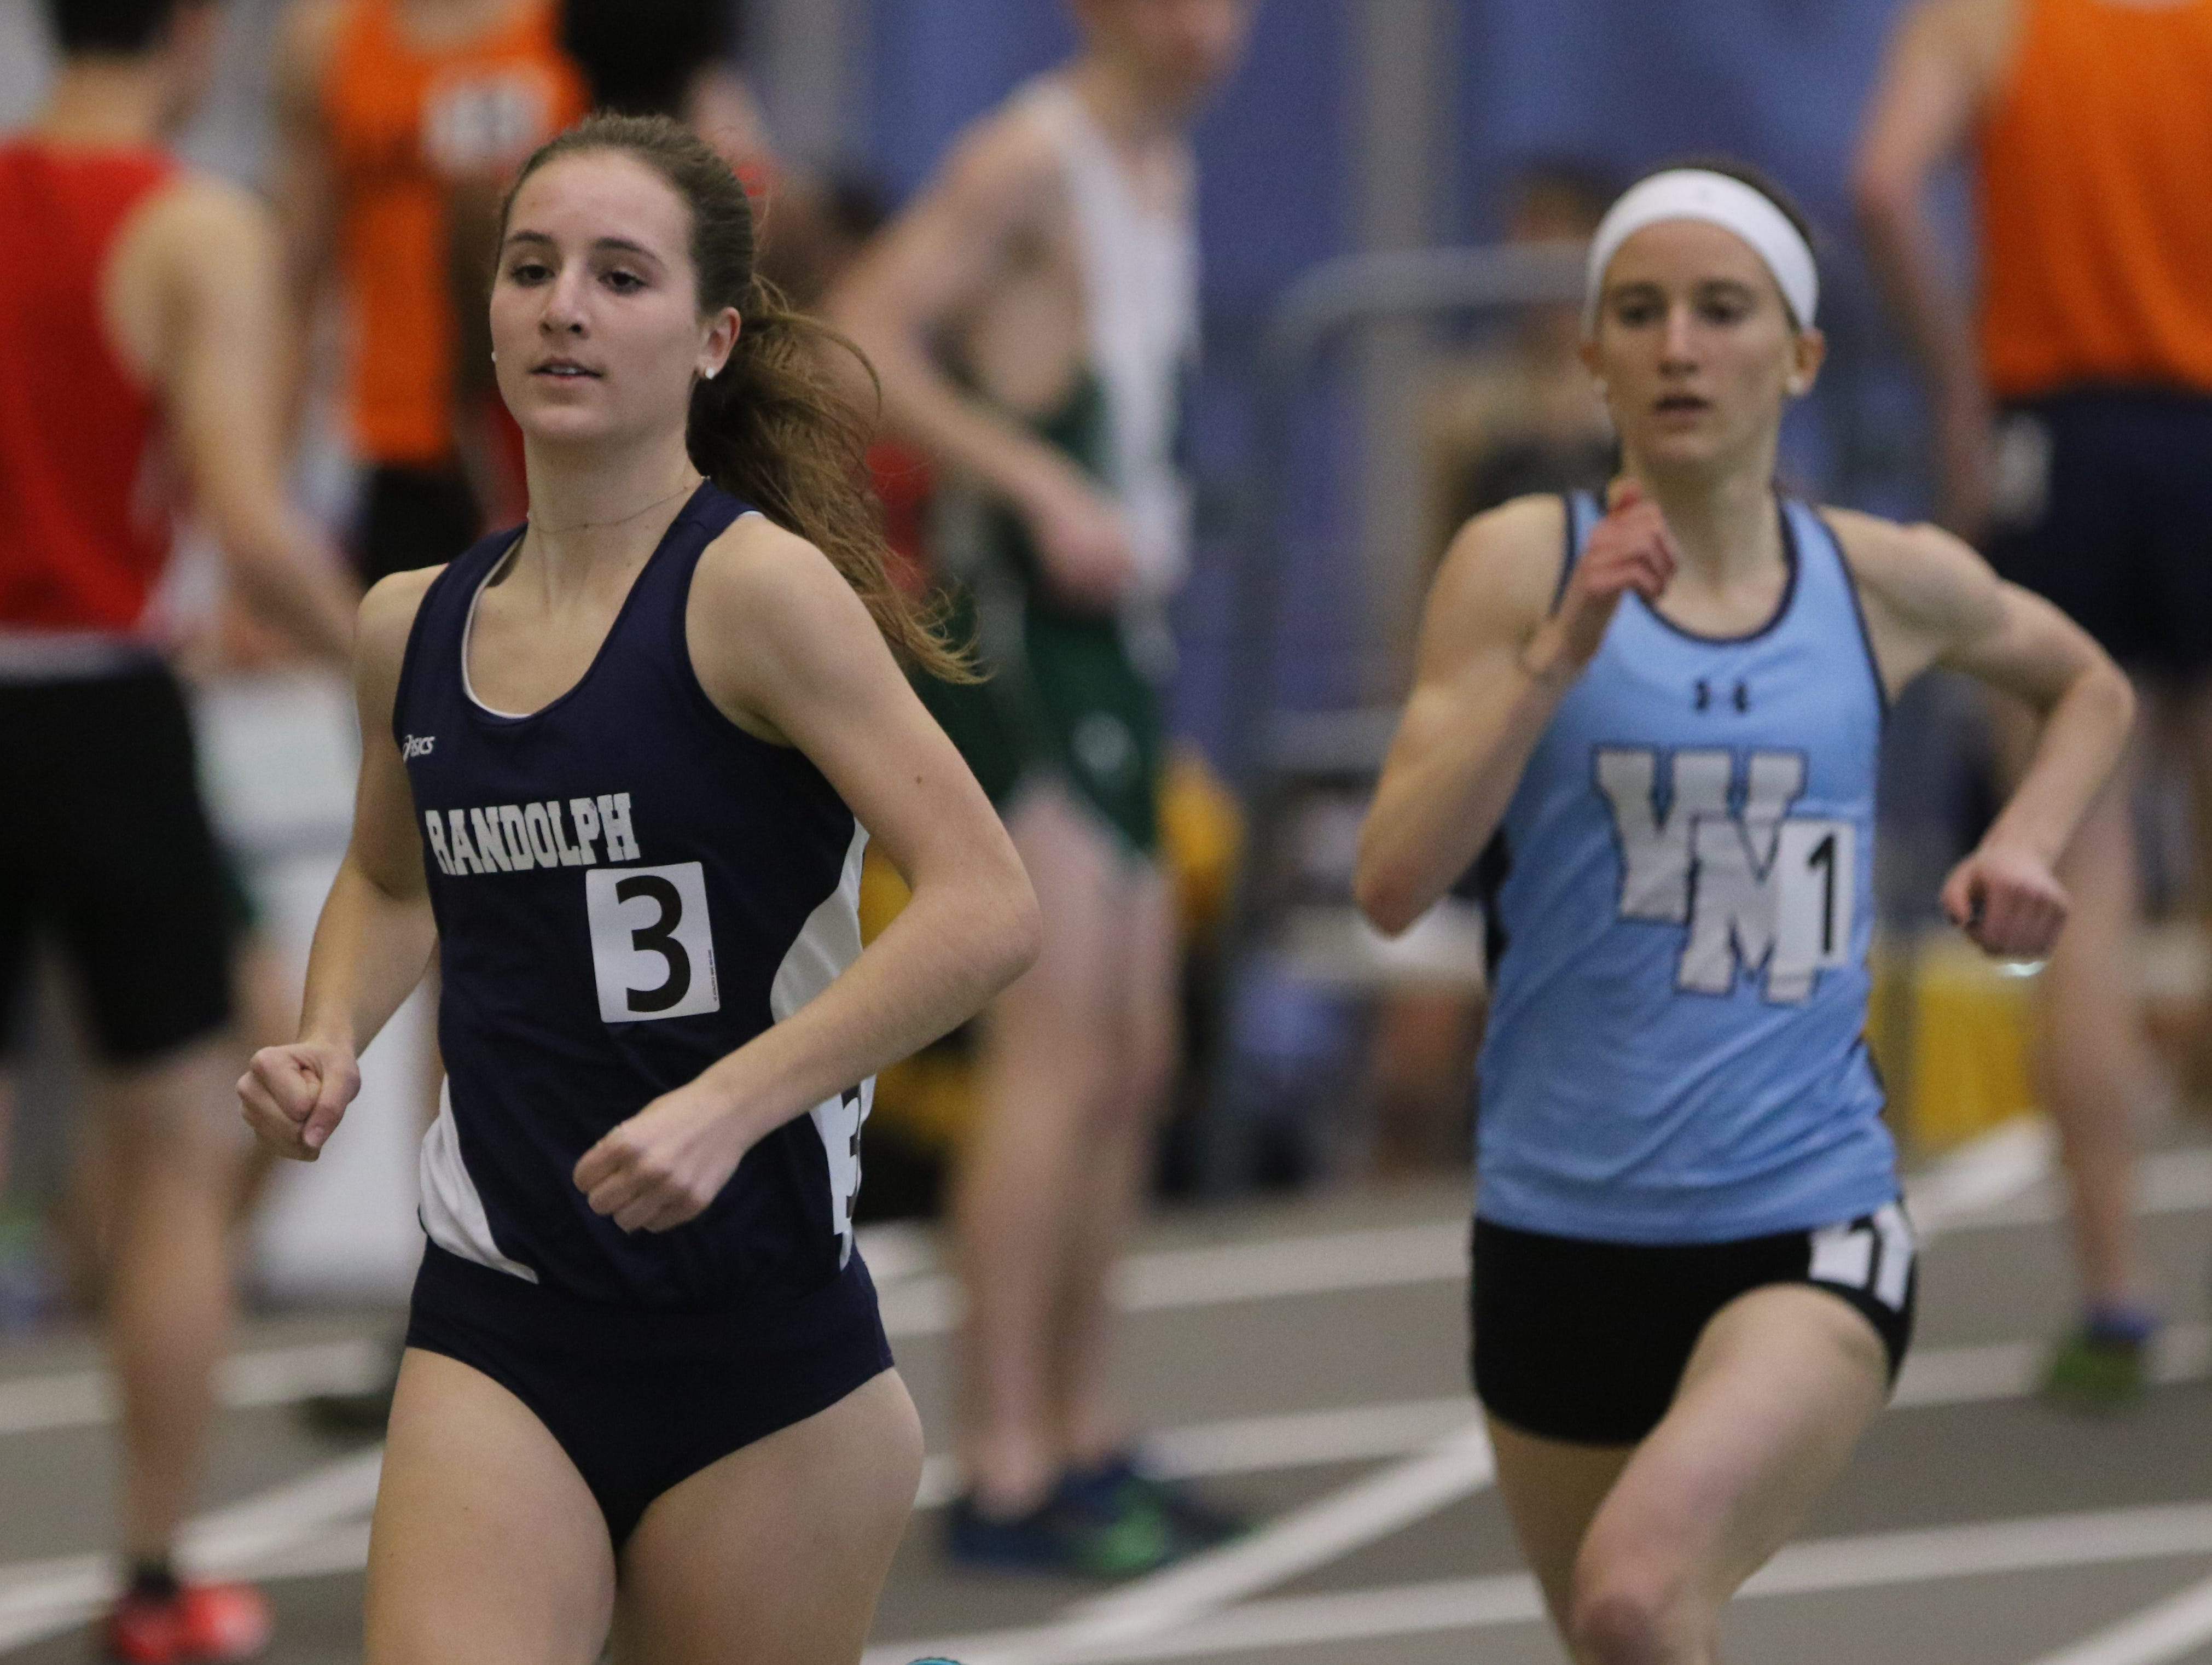 Abby Loveys of Randolph leads Julia Trethaway of West Morris as she wins the girls 1600 meter run.